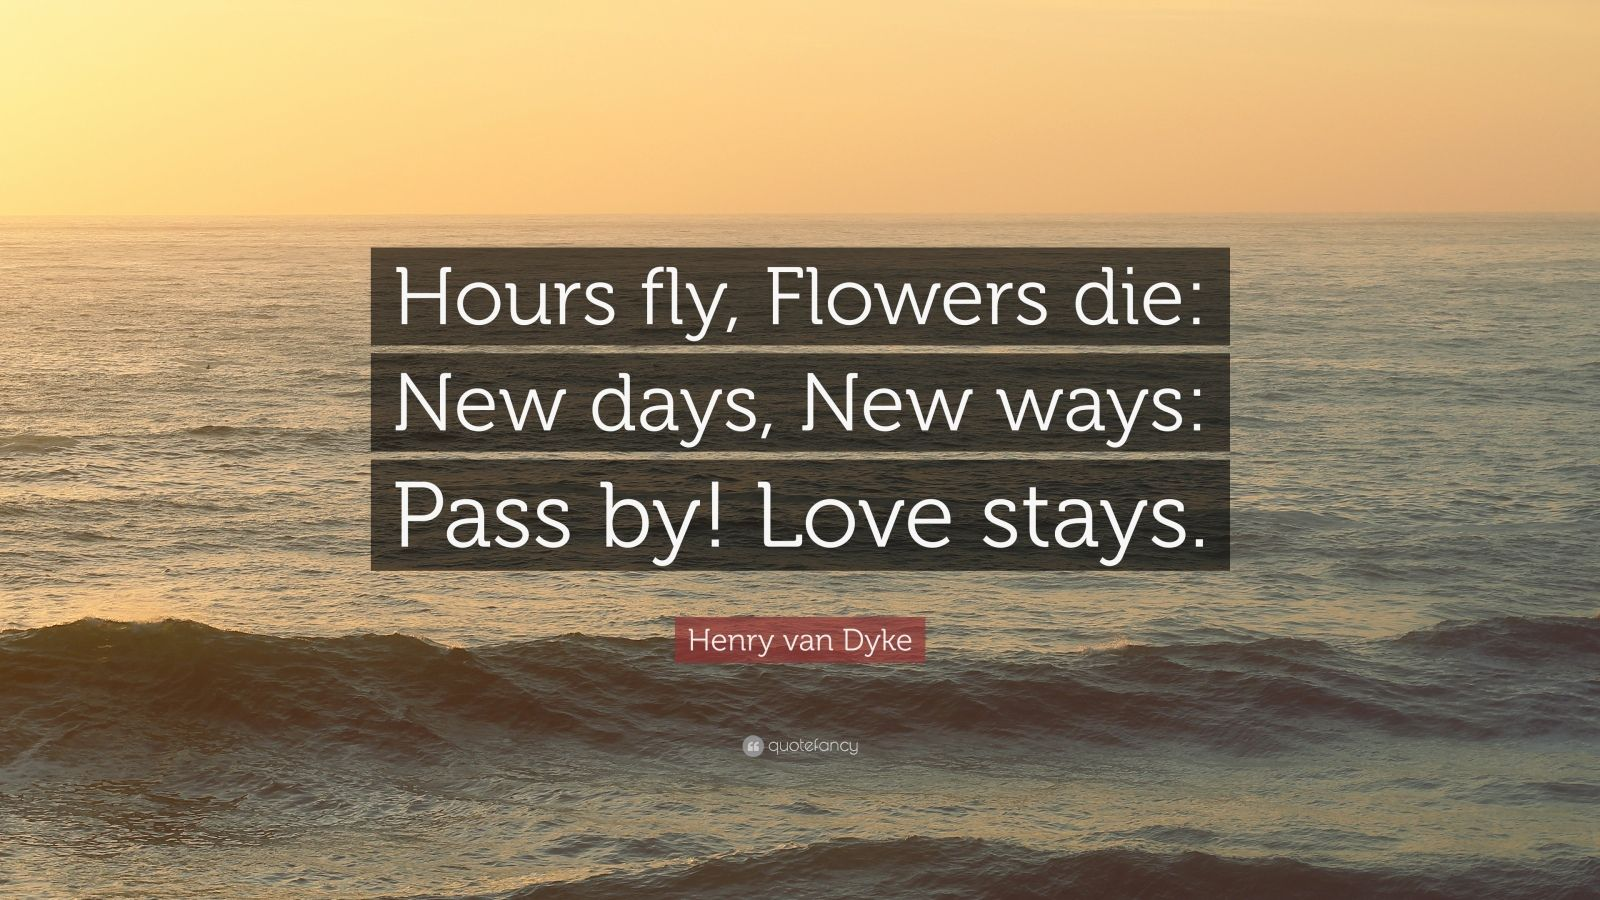 """Henry van Dyke Quote: """"Hours fly, Flowers die: New days, New ways: Pass by! Love stays."""""""